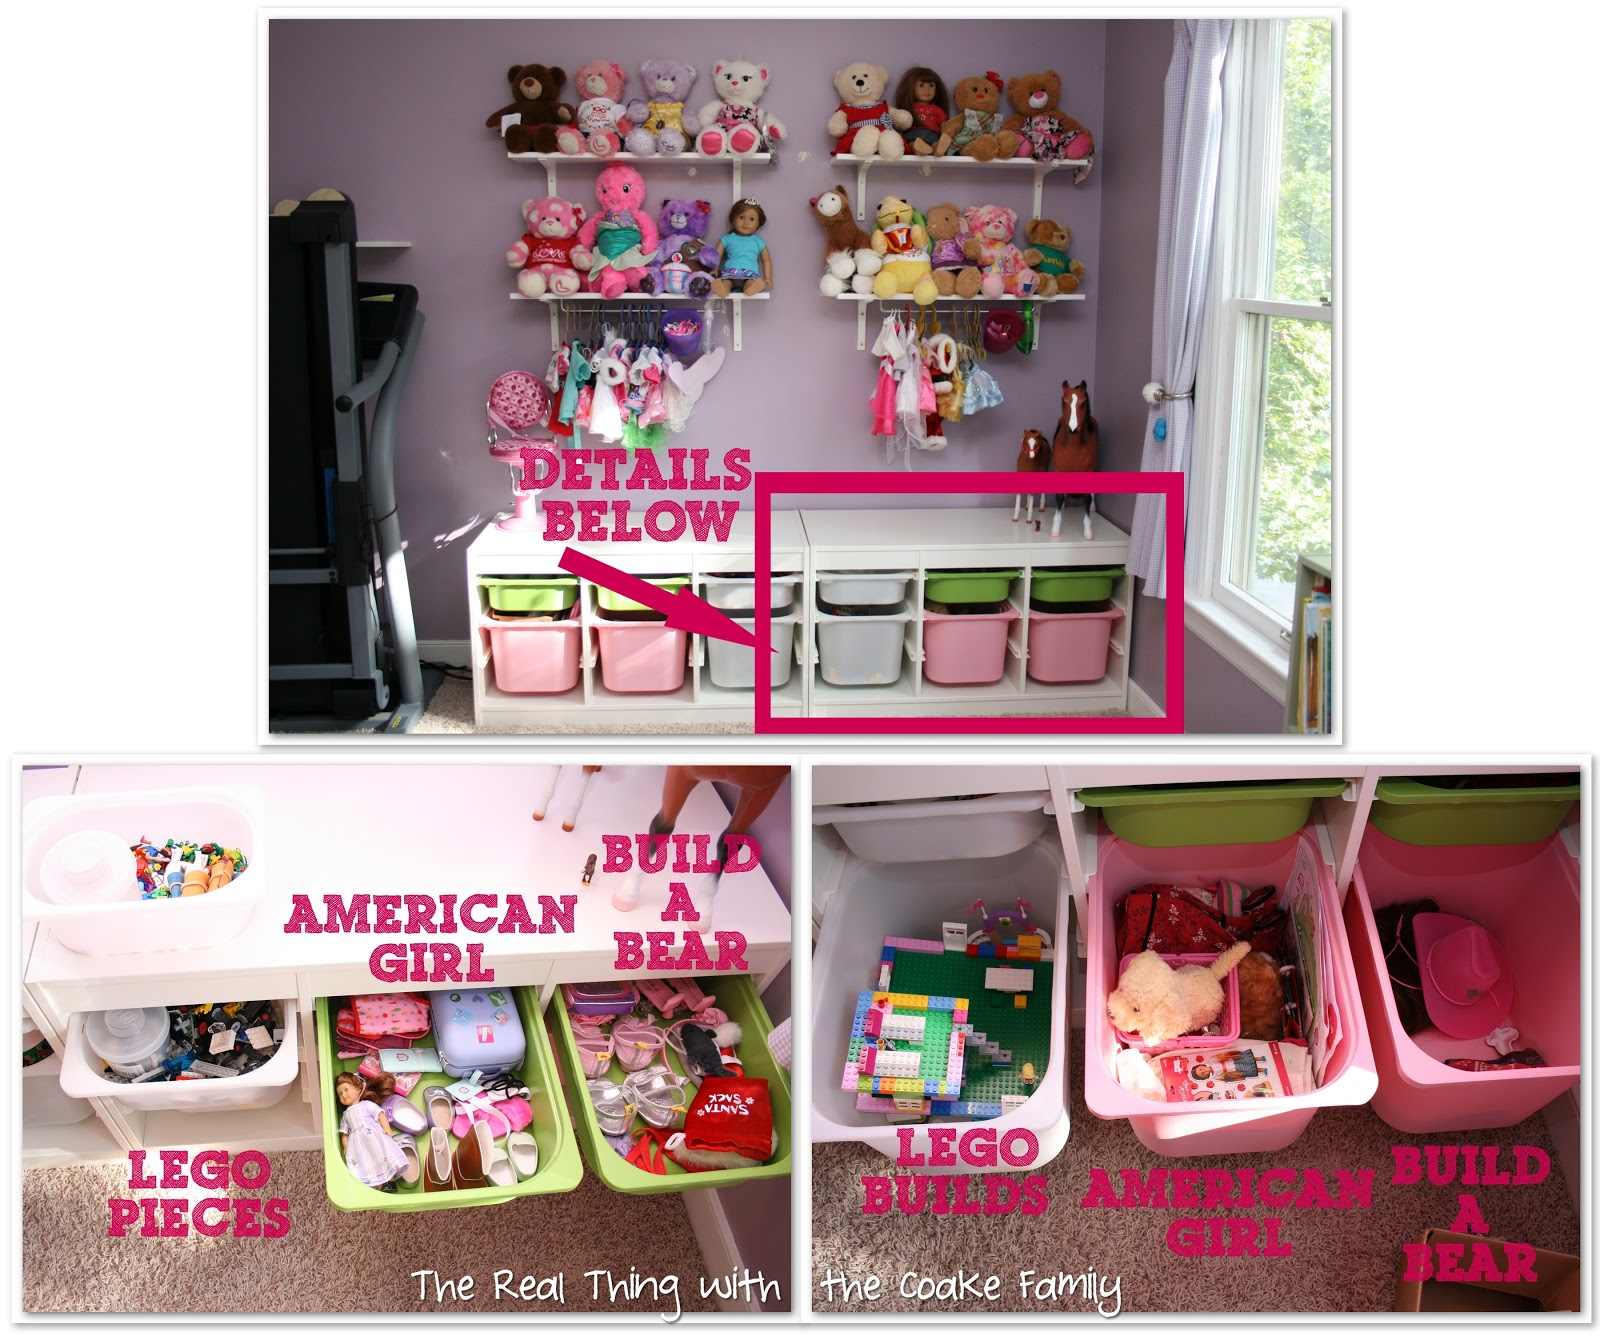 Exceptionnel Toy Storage: Kidu0027s Playroom Reorganization   The Real Thing With The Coake  Family